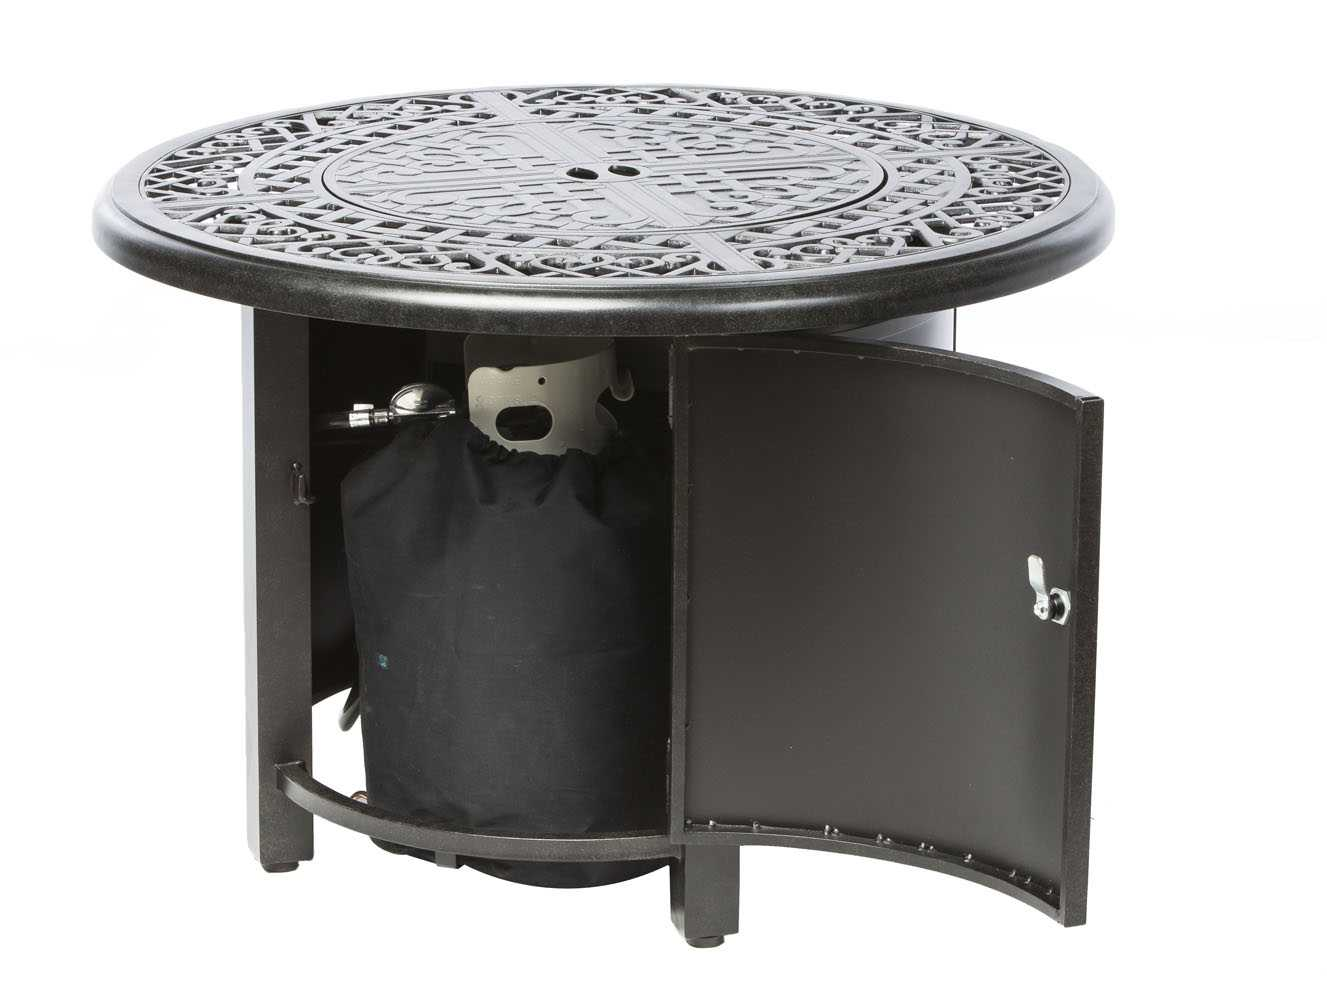 Alfresco Home Kinsale 36 Round Gas Fire Pit Chat Table